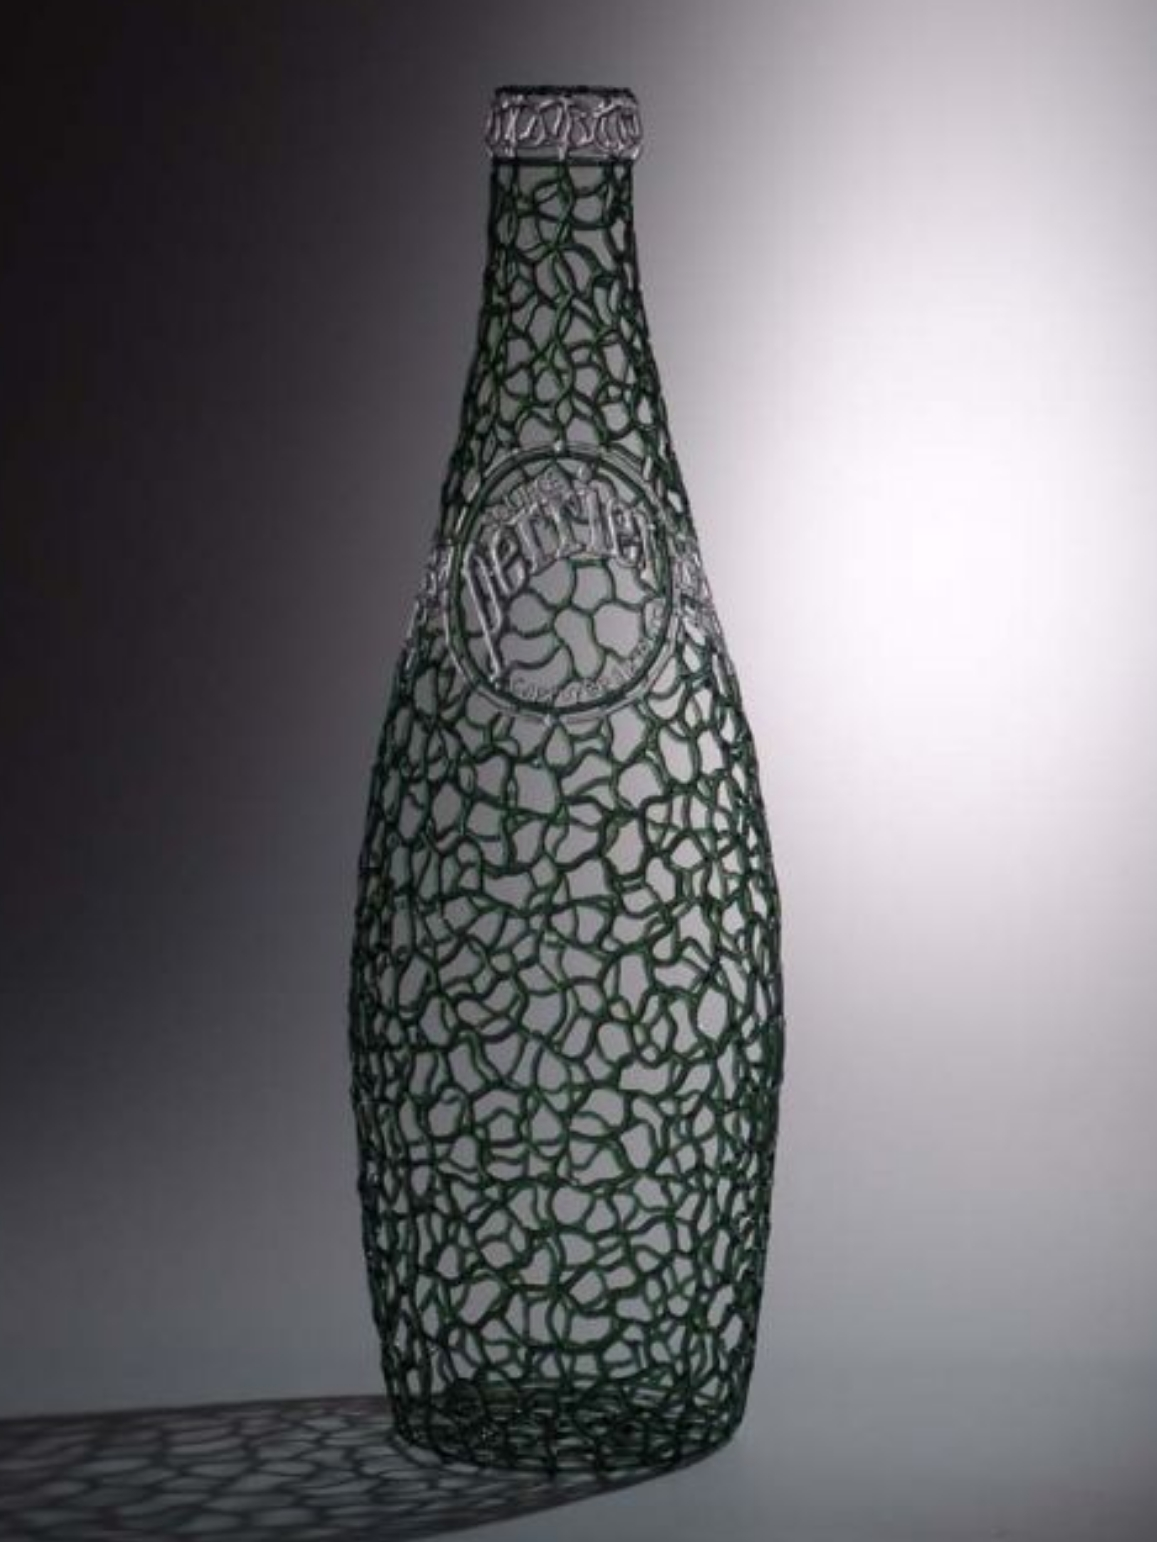 Flameworked glass Perrier bottle by Robert Mickelsen